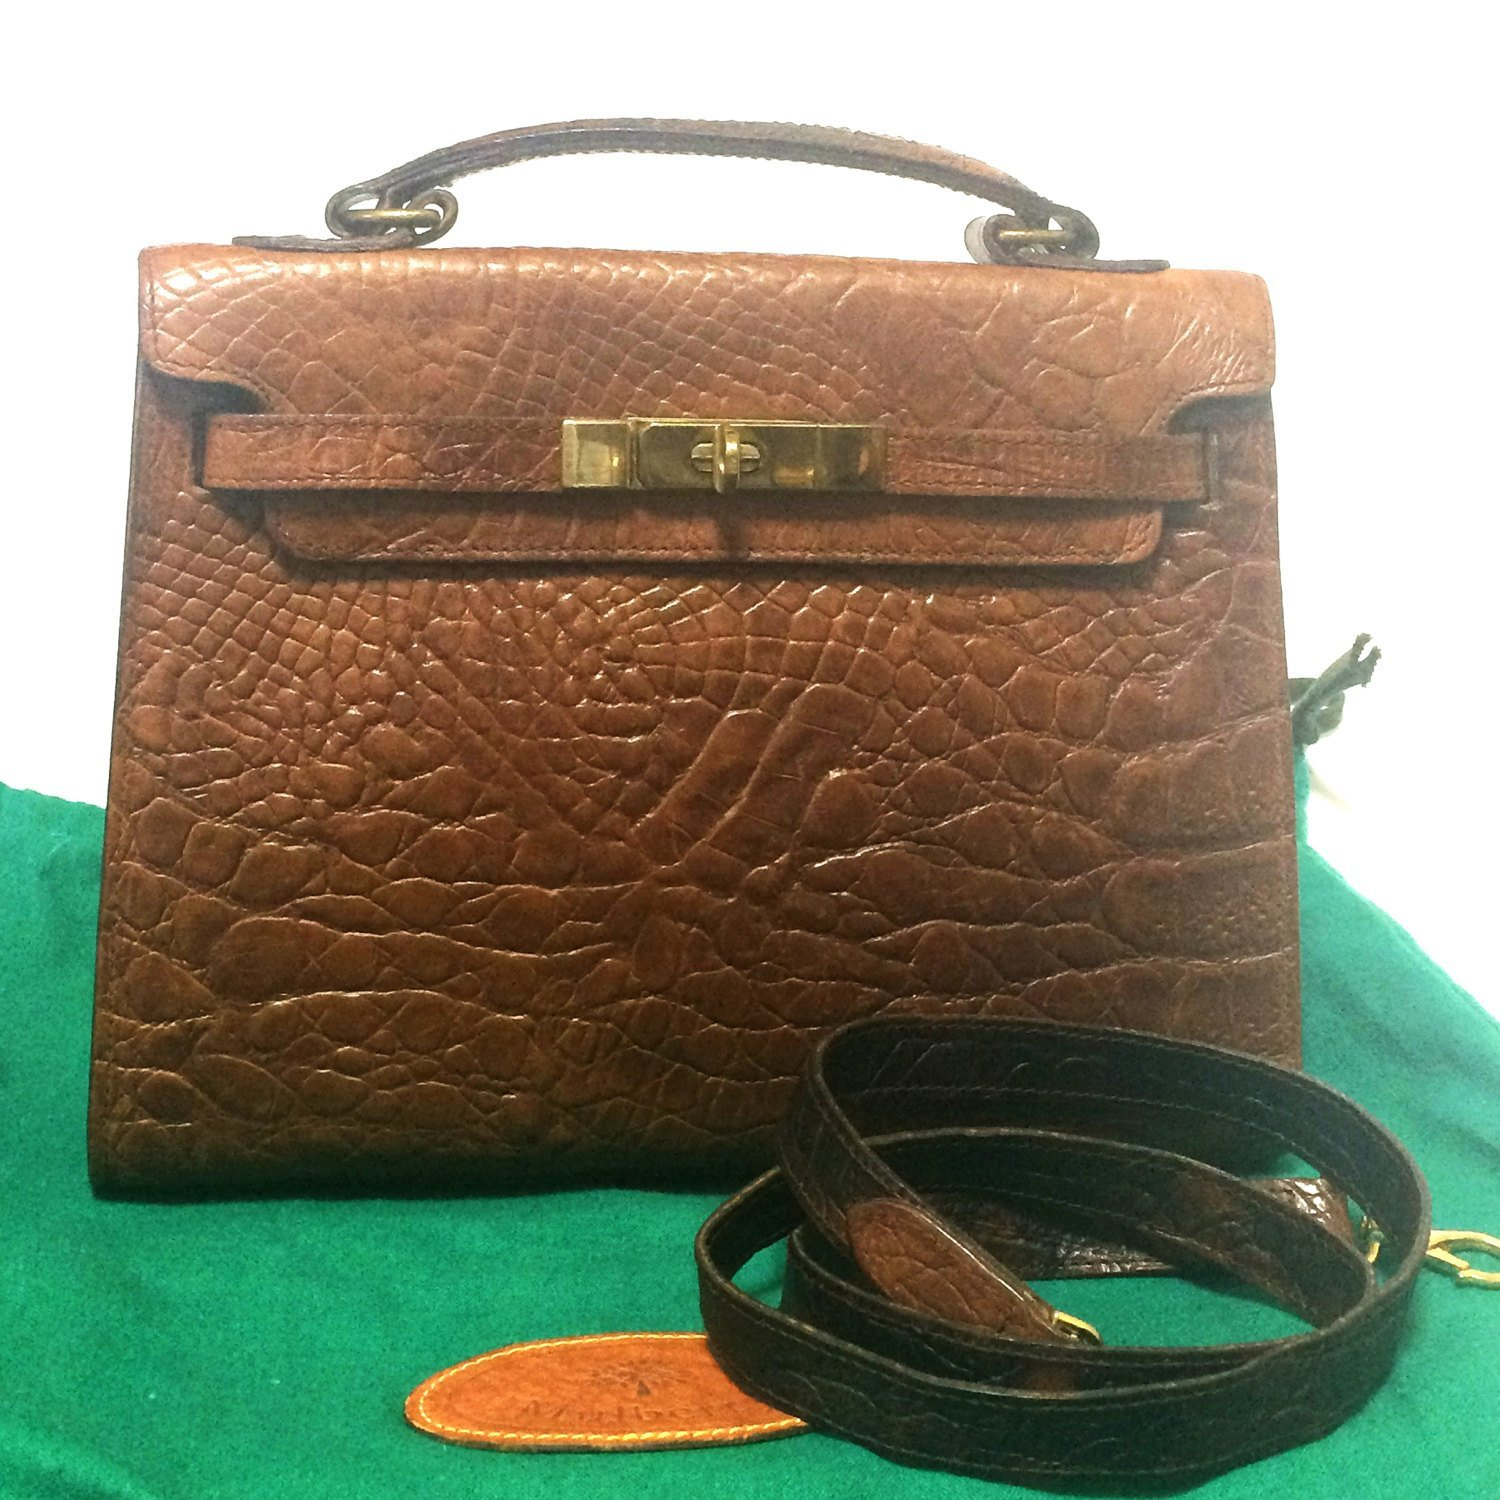 b9d66dd0fff3 Vintage Mulberry croc embossed brown leather and 12 similar items. Il  fullxfull.1114445673 9usd